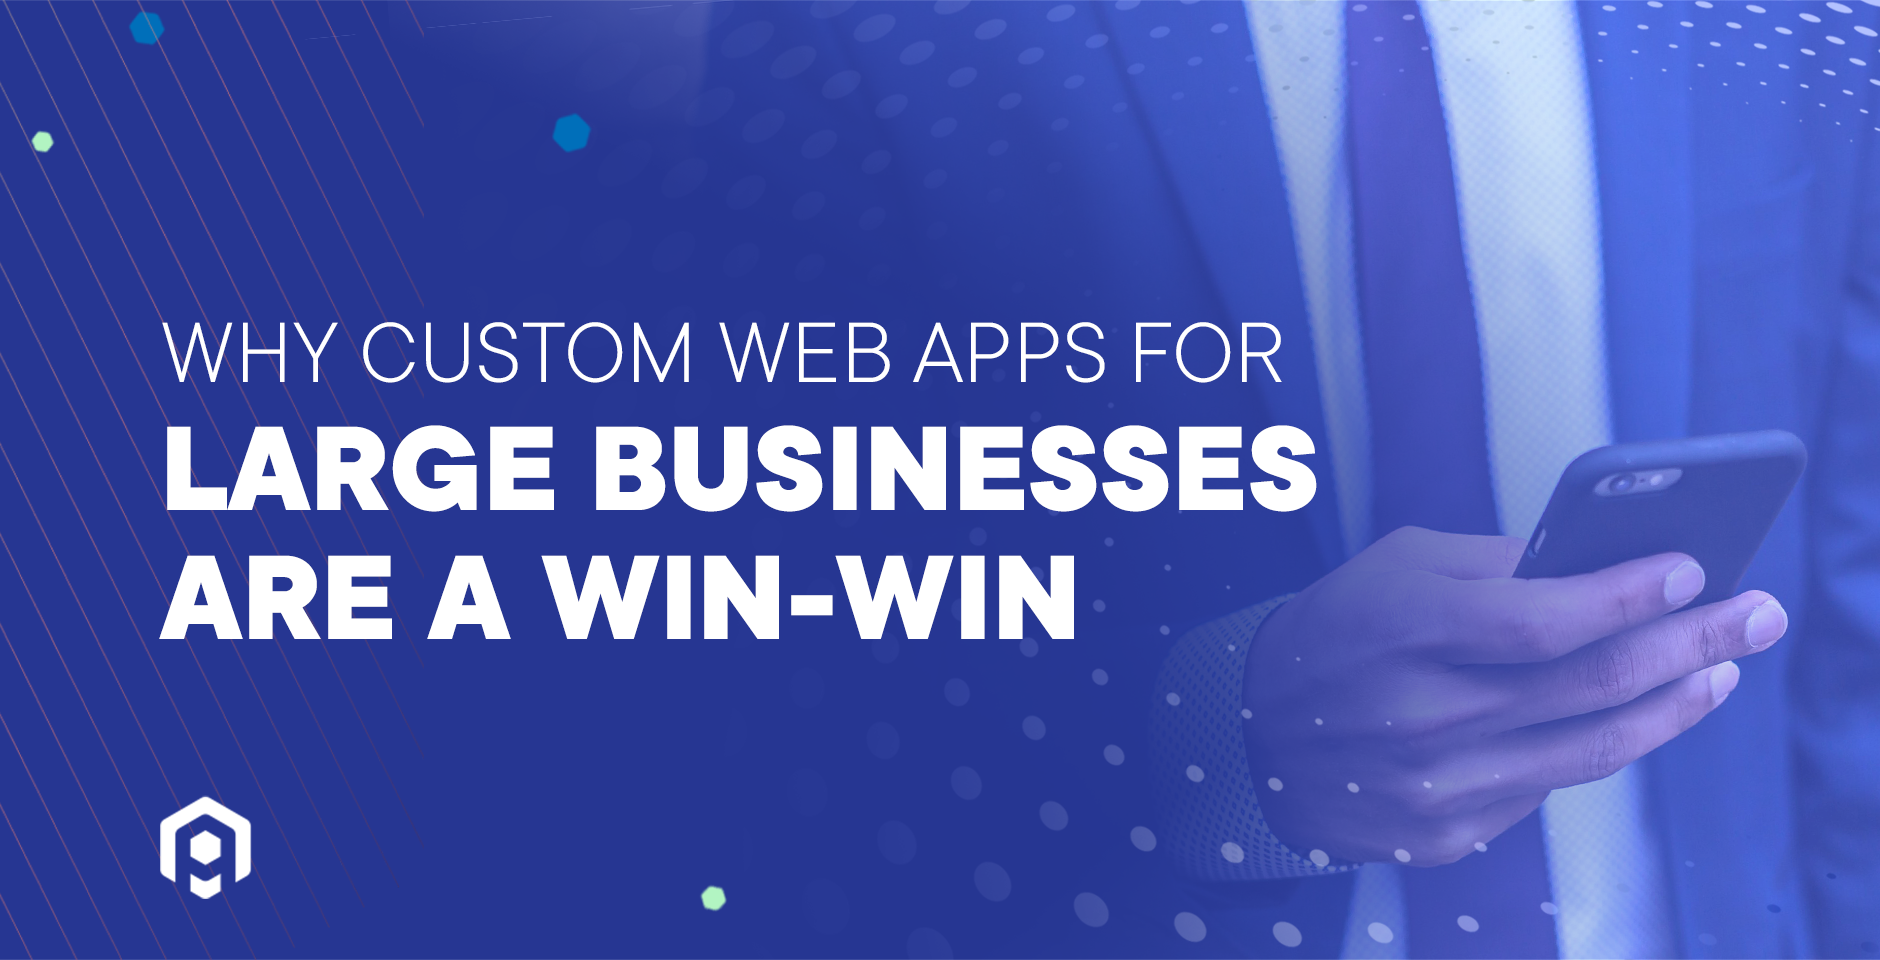 Why Custom Web Apps for Large Businesses are a Win-Win